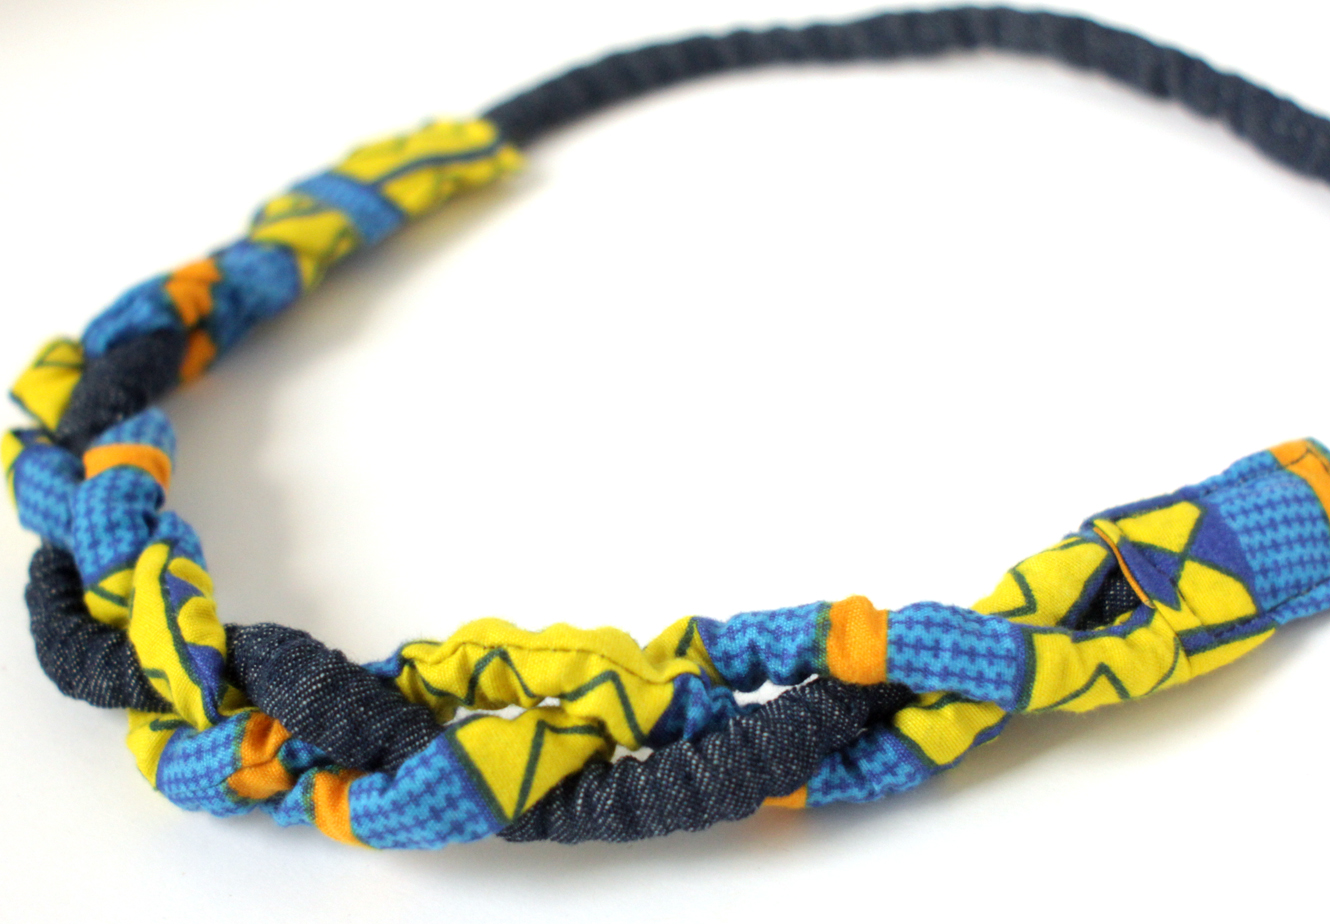 monimon products necklace blue textile yellow ca